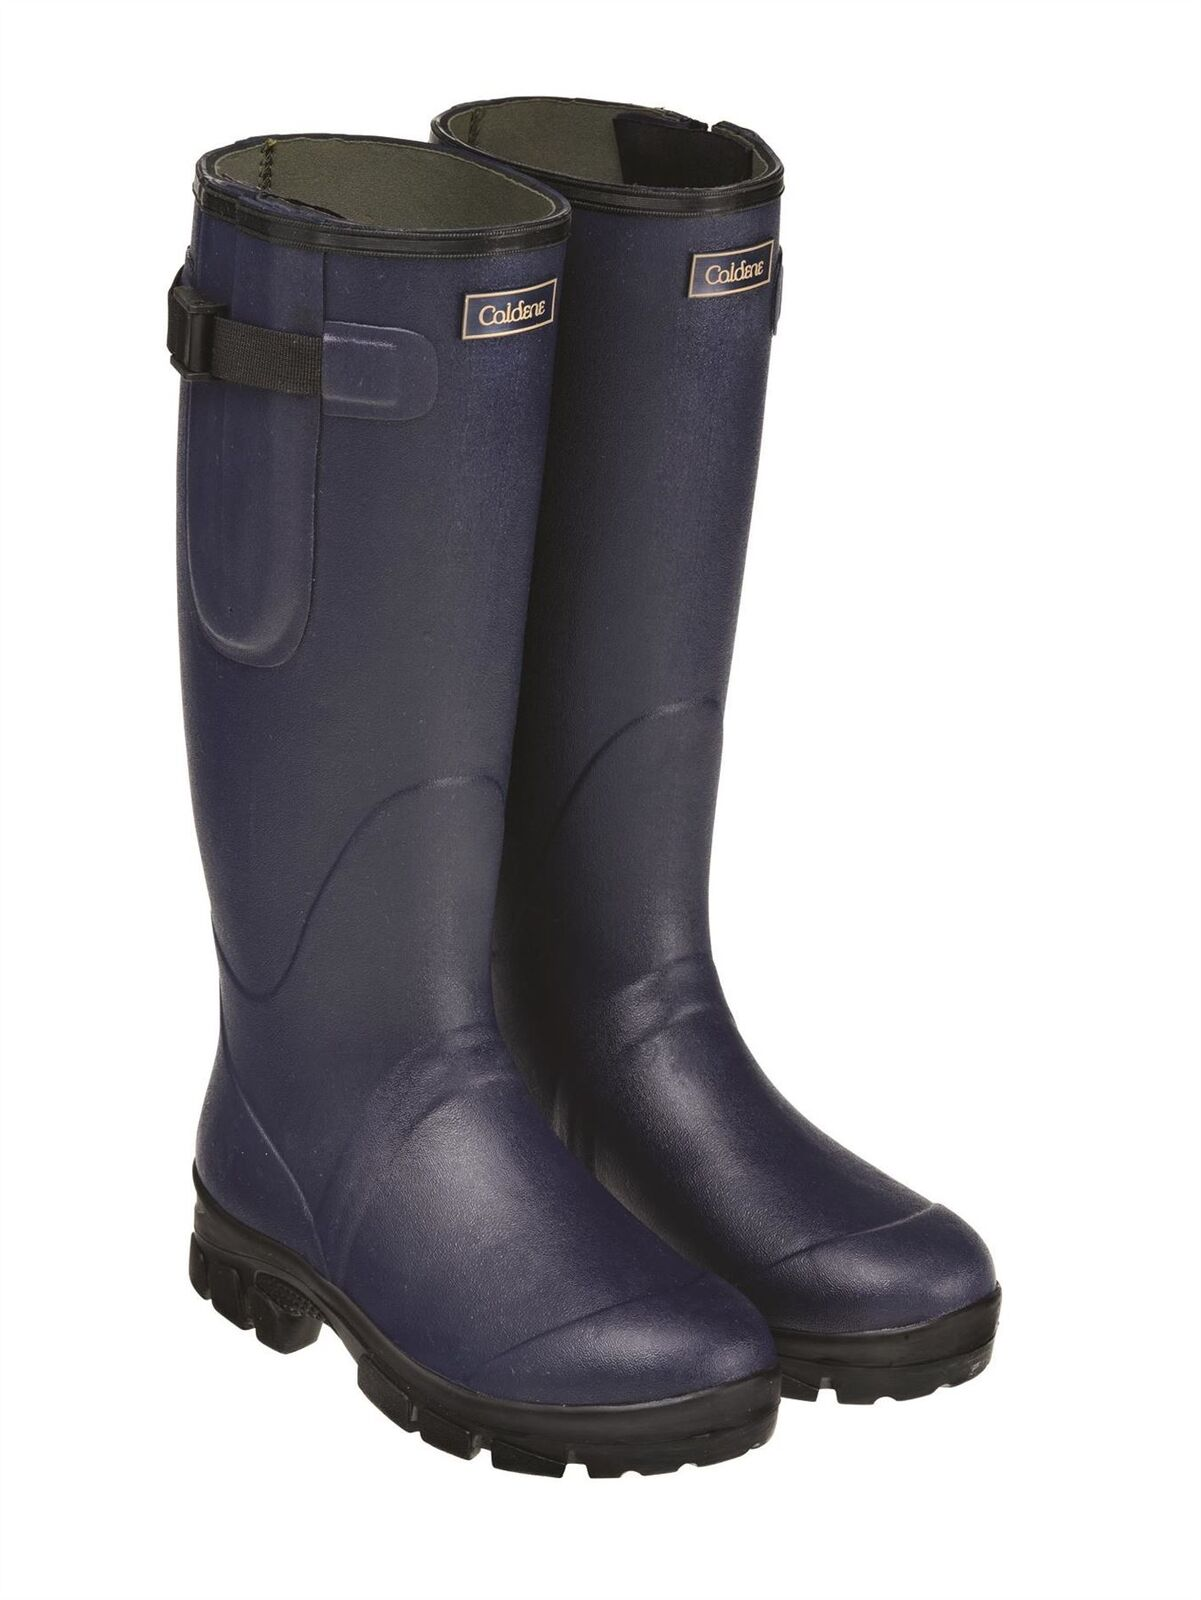 Caldene Westfield Wellies - Neoprene Lined - Green - BN